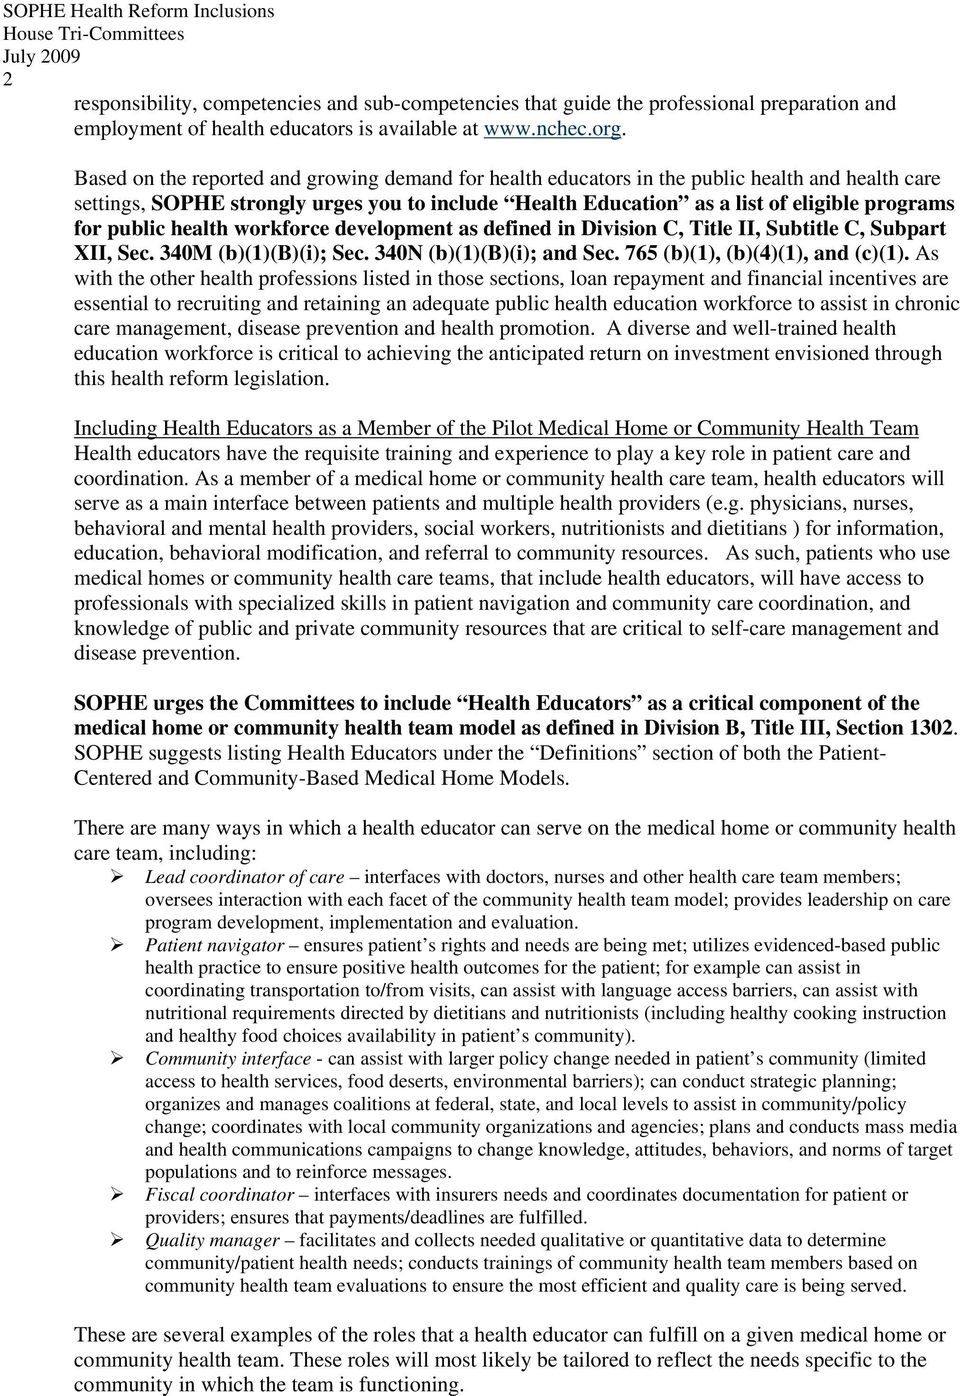 public health workforce development as defined in Division C, Title II, Subtitle C, Subpart XII, Sec. 340M (b)(1)(b)(i); Sec. 340N (b)(1)(b)(i); and Sec. 765 (b)(1), (b)(4)(1), and (c)(1).